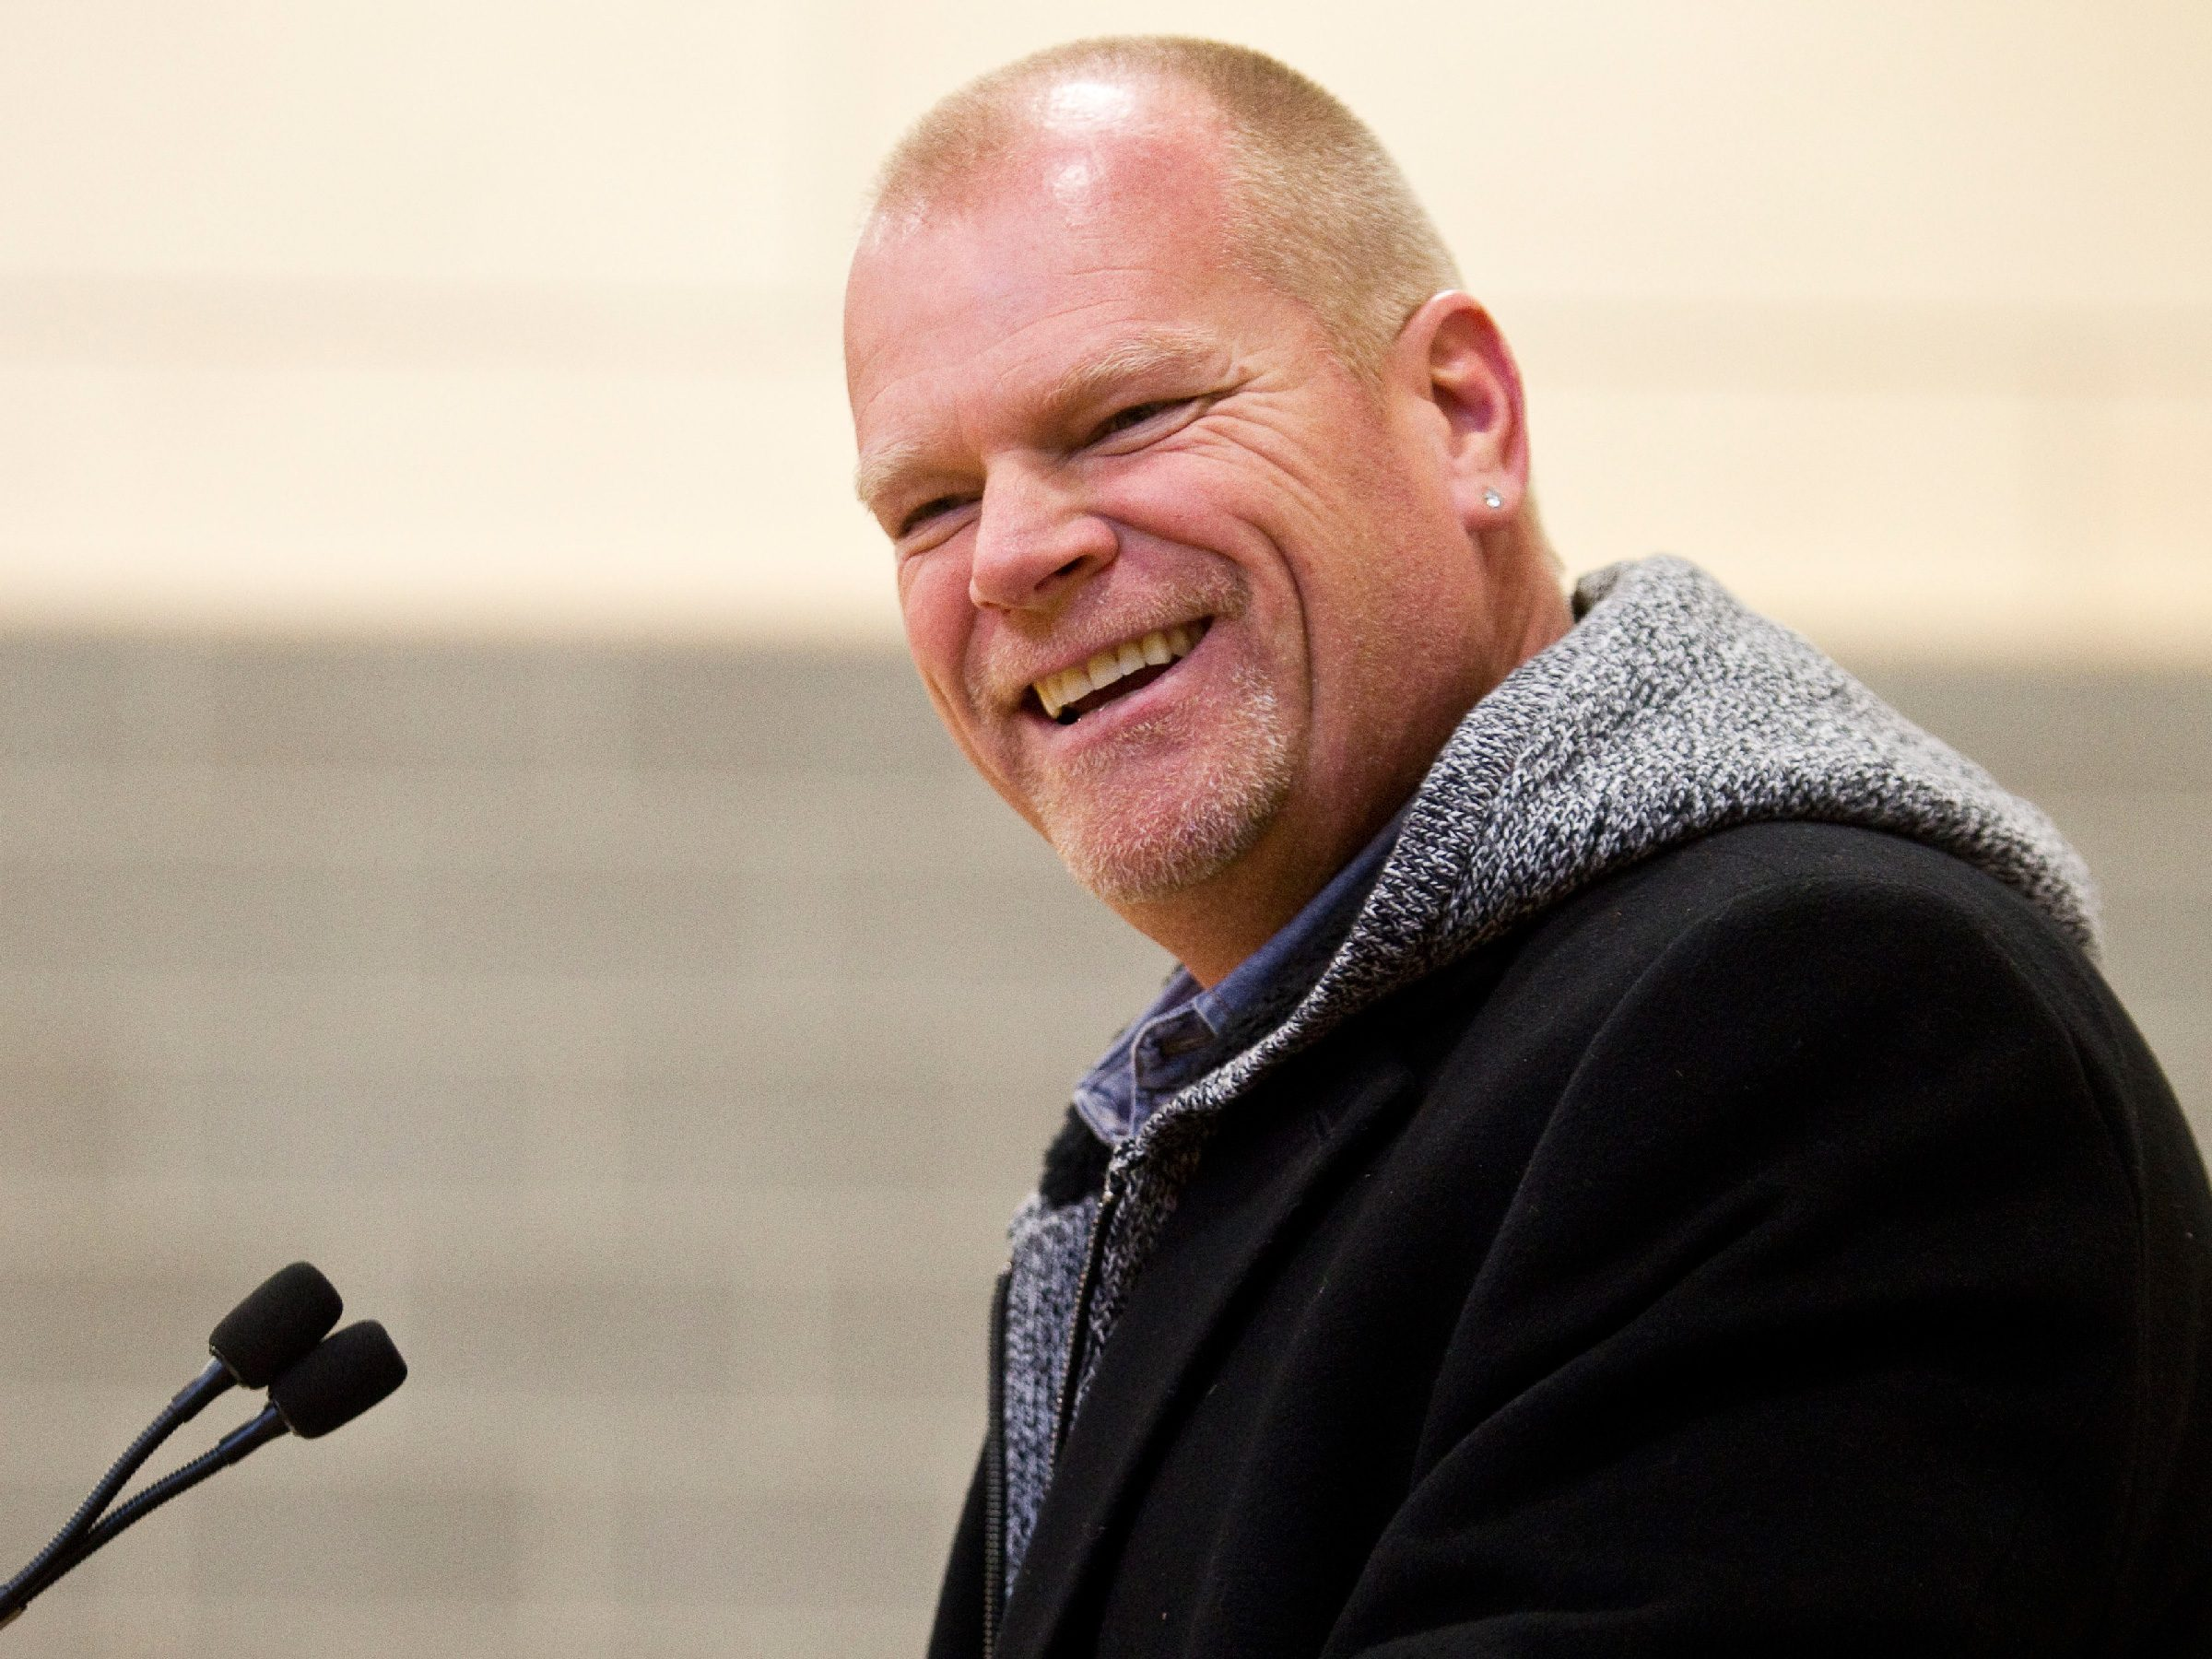 4. Mike Holmes